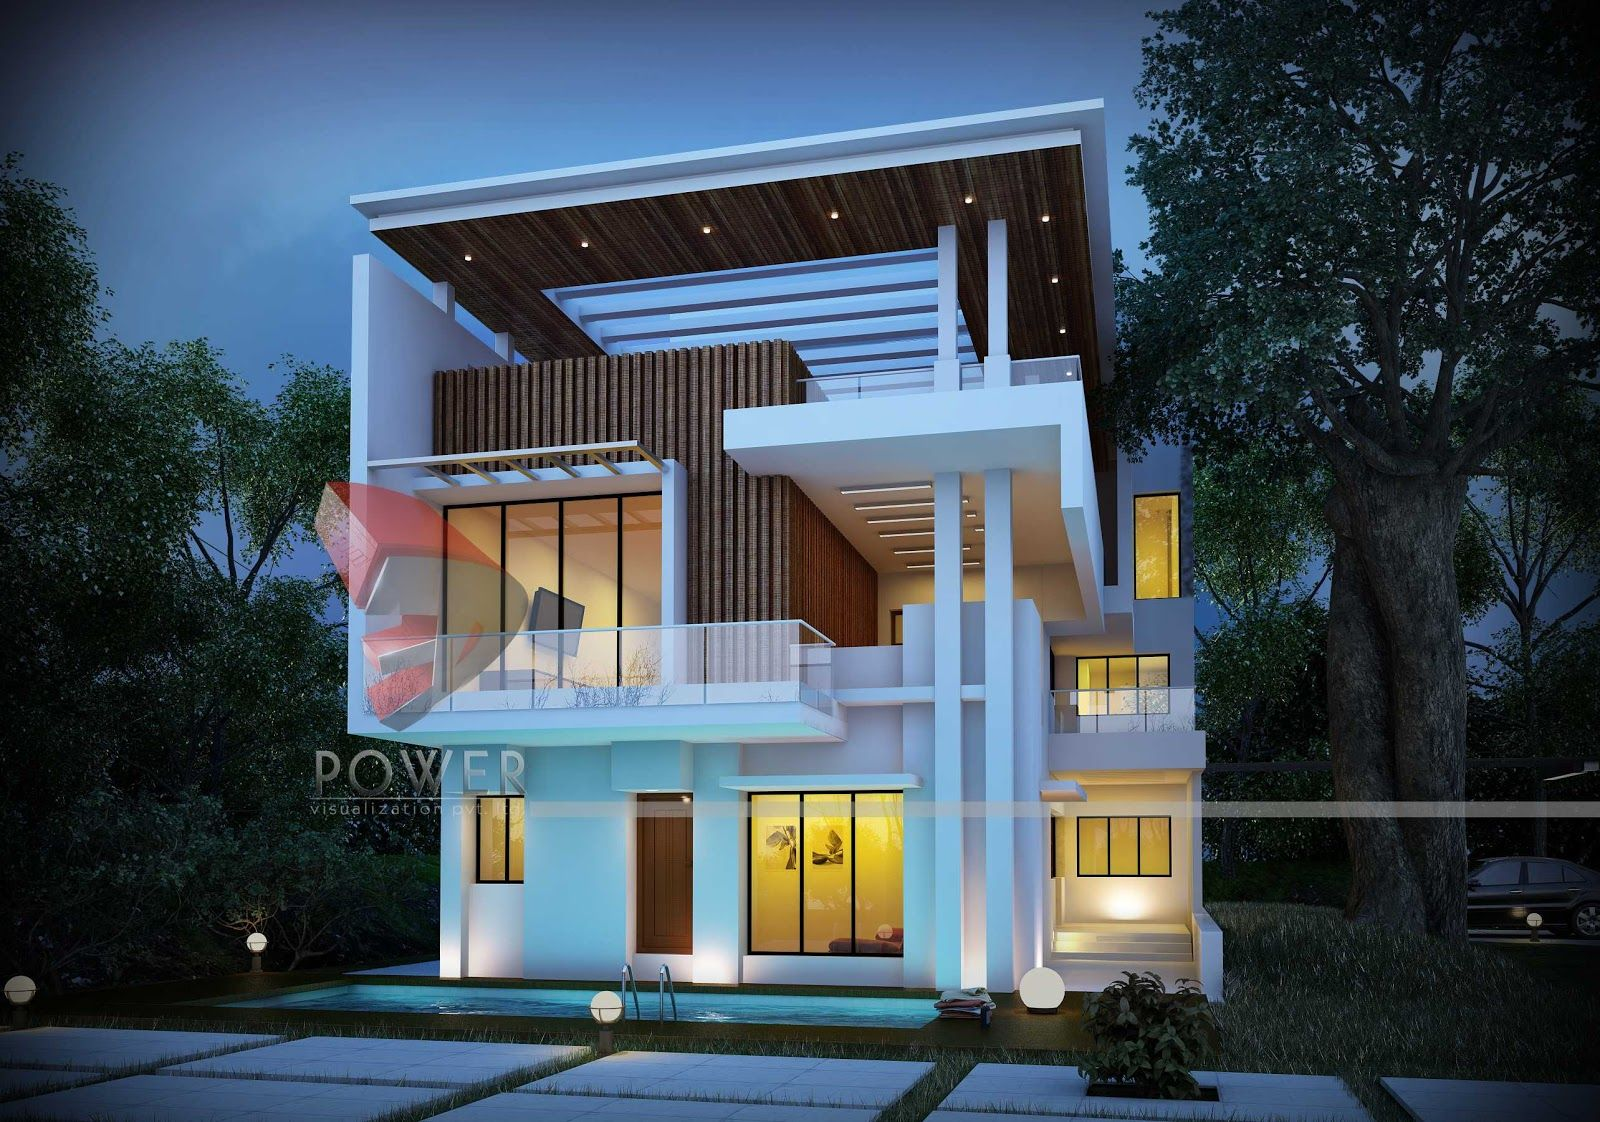 b99c57f0471724f7c57626188bcc732f modern architecture 3d architecture designmodern architecture on 3d architecture house design. beautiful ideas. Home Design Ideas